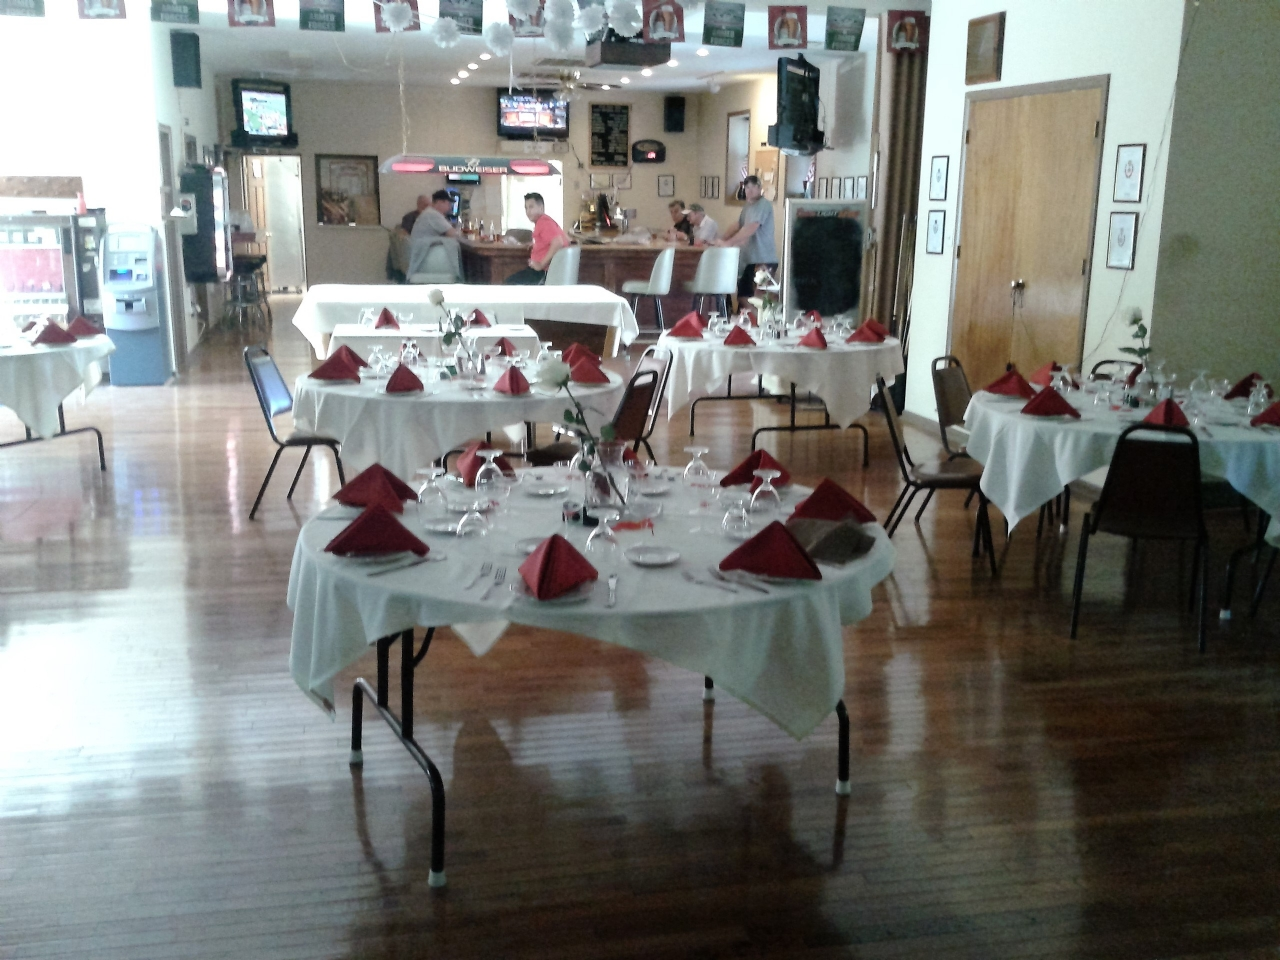 The Post's Canteen Hall is available for includes ample off street parking, stage,tables, chairs, linens and catering. Contact Bob Humes at 484-889-8337 or Qm@vfw7878.org for further information and dates available.